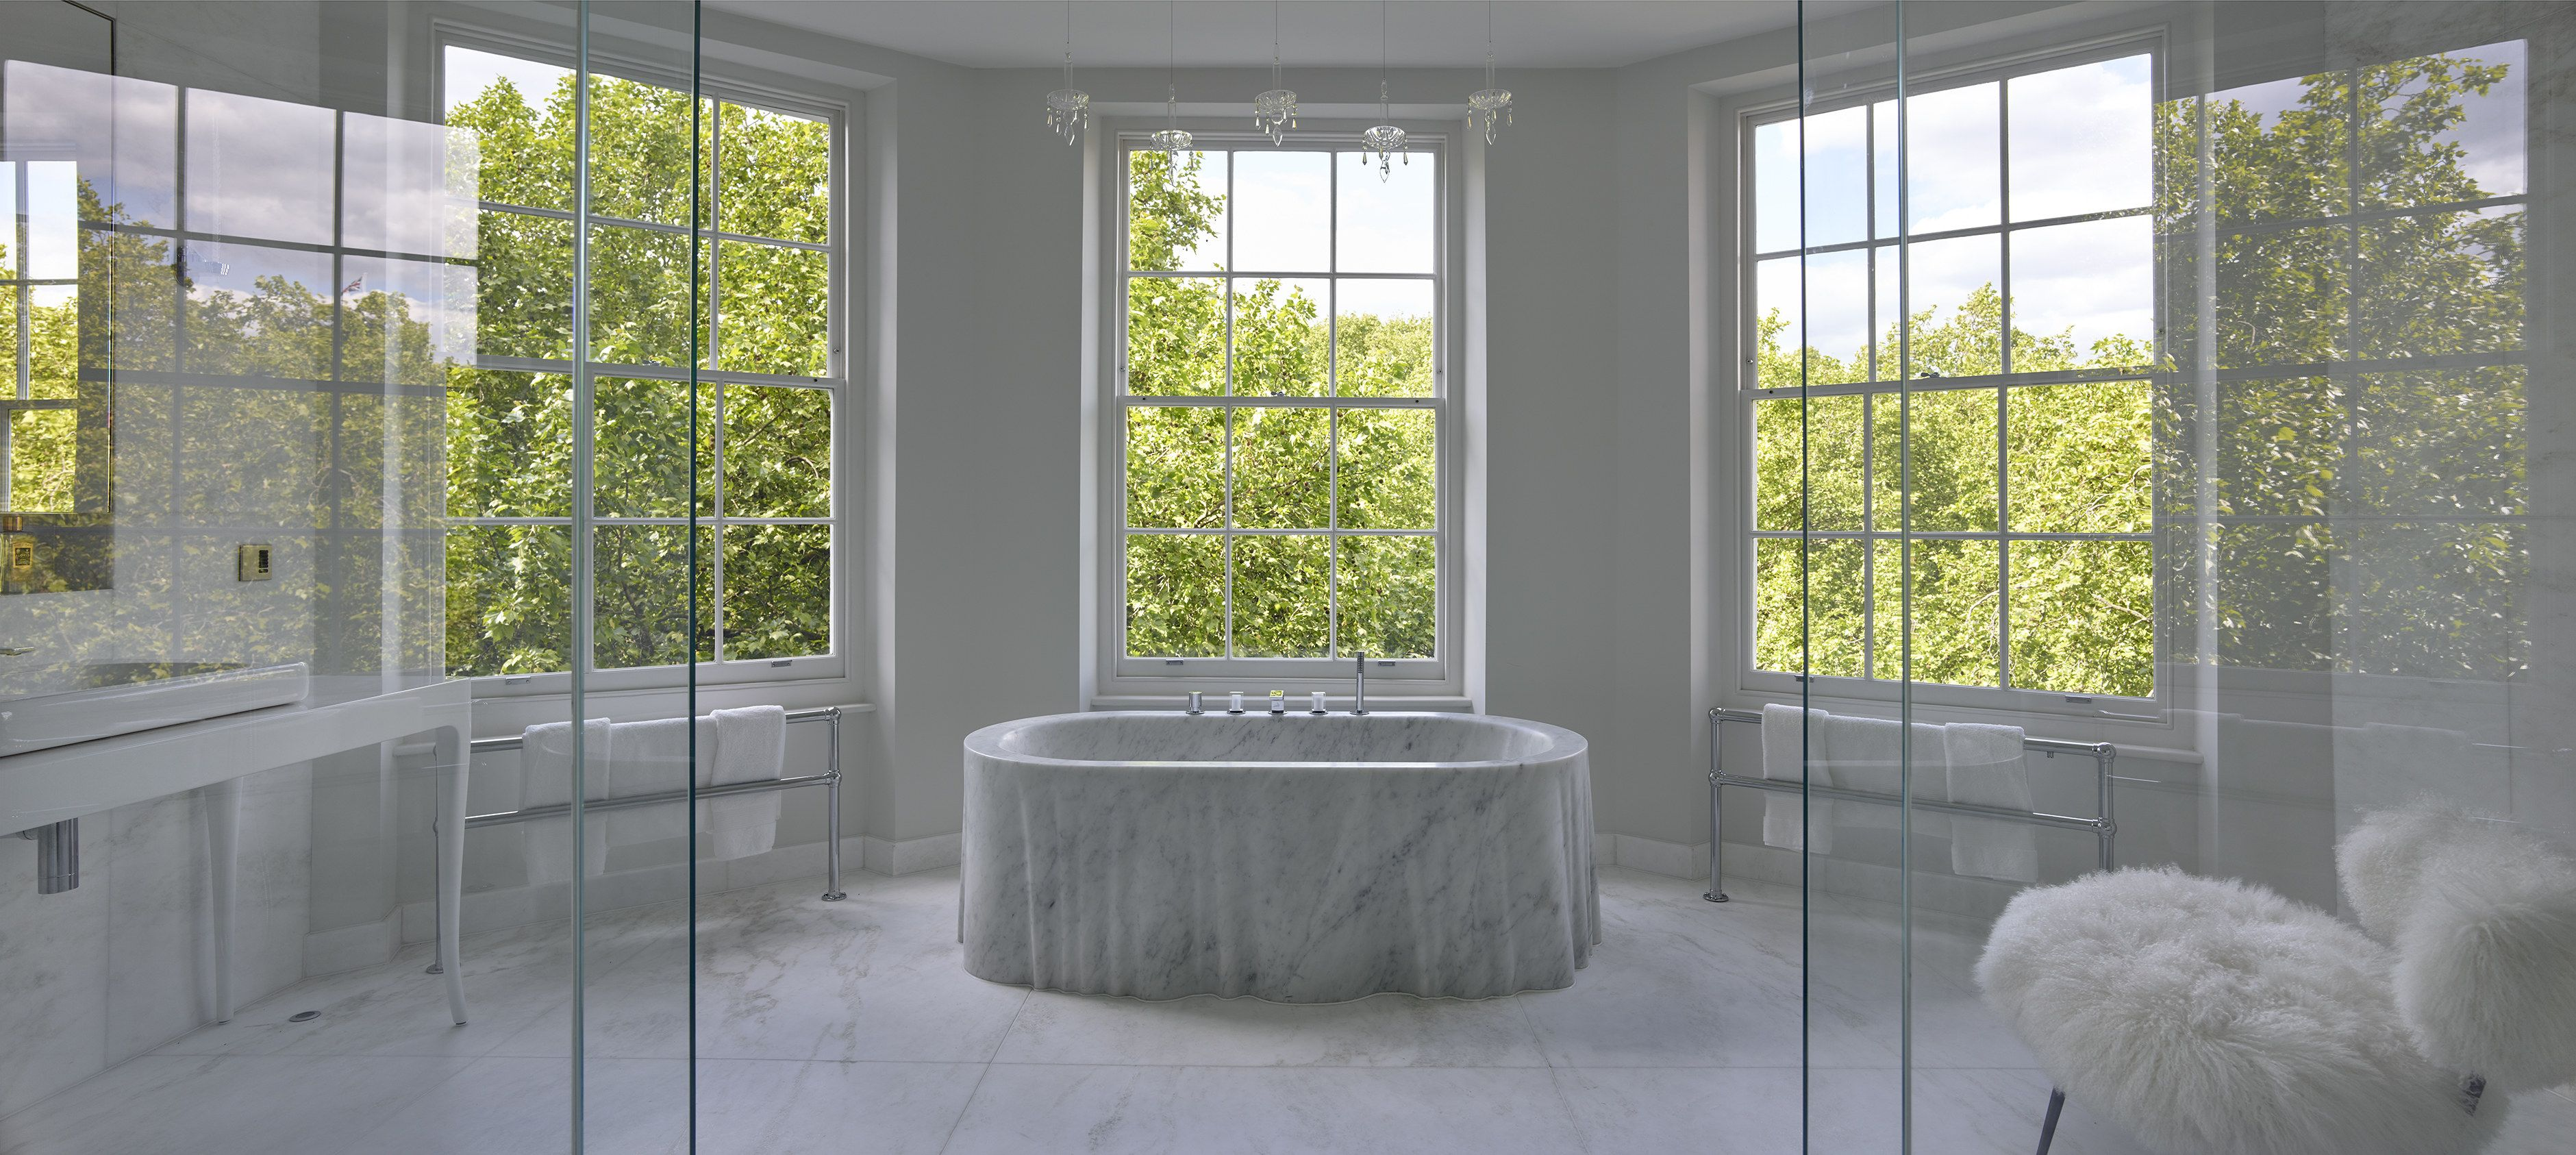 Renovated London Mansion On Market For 35 Million With